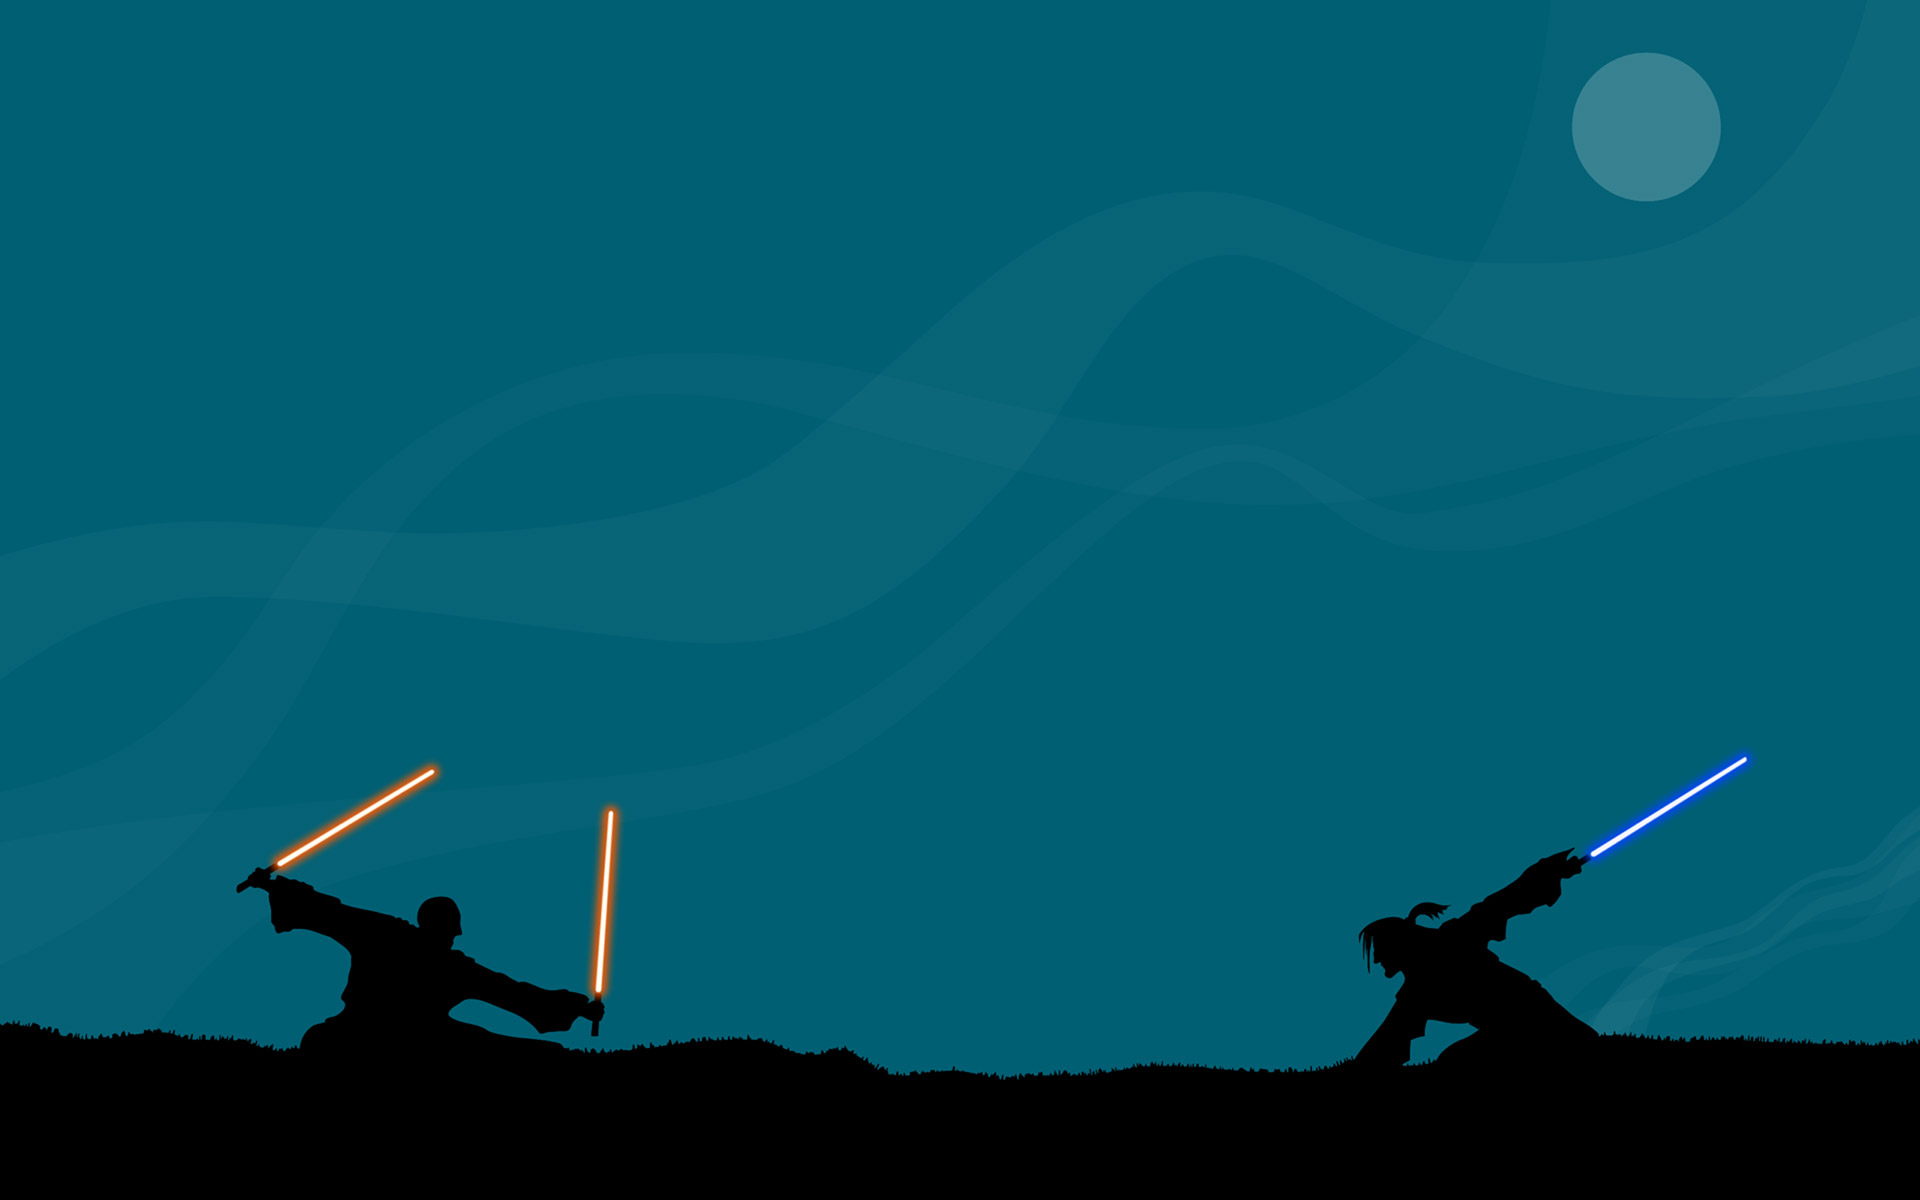 Star Wars Vector HD Wallpaper 1920x1200